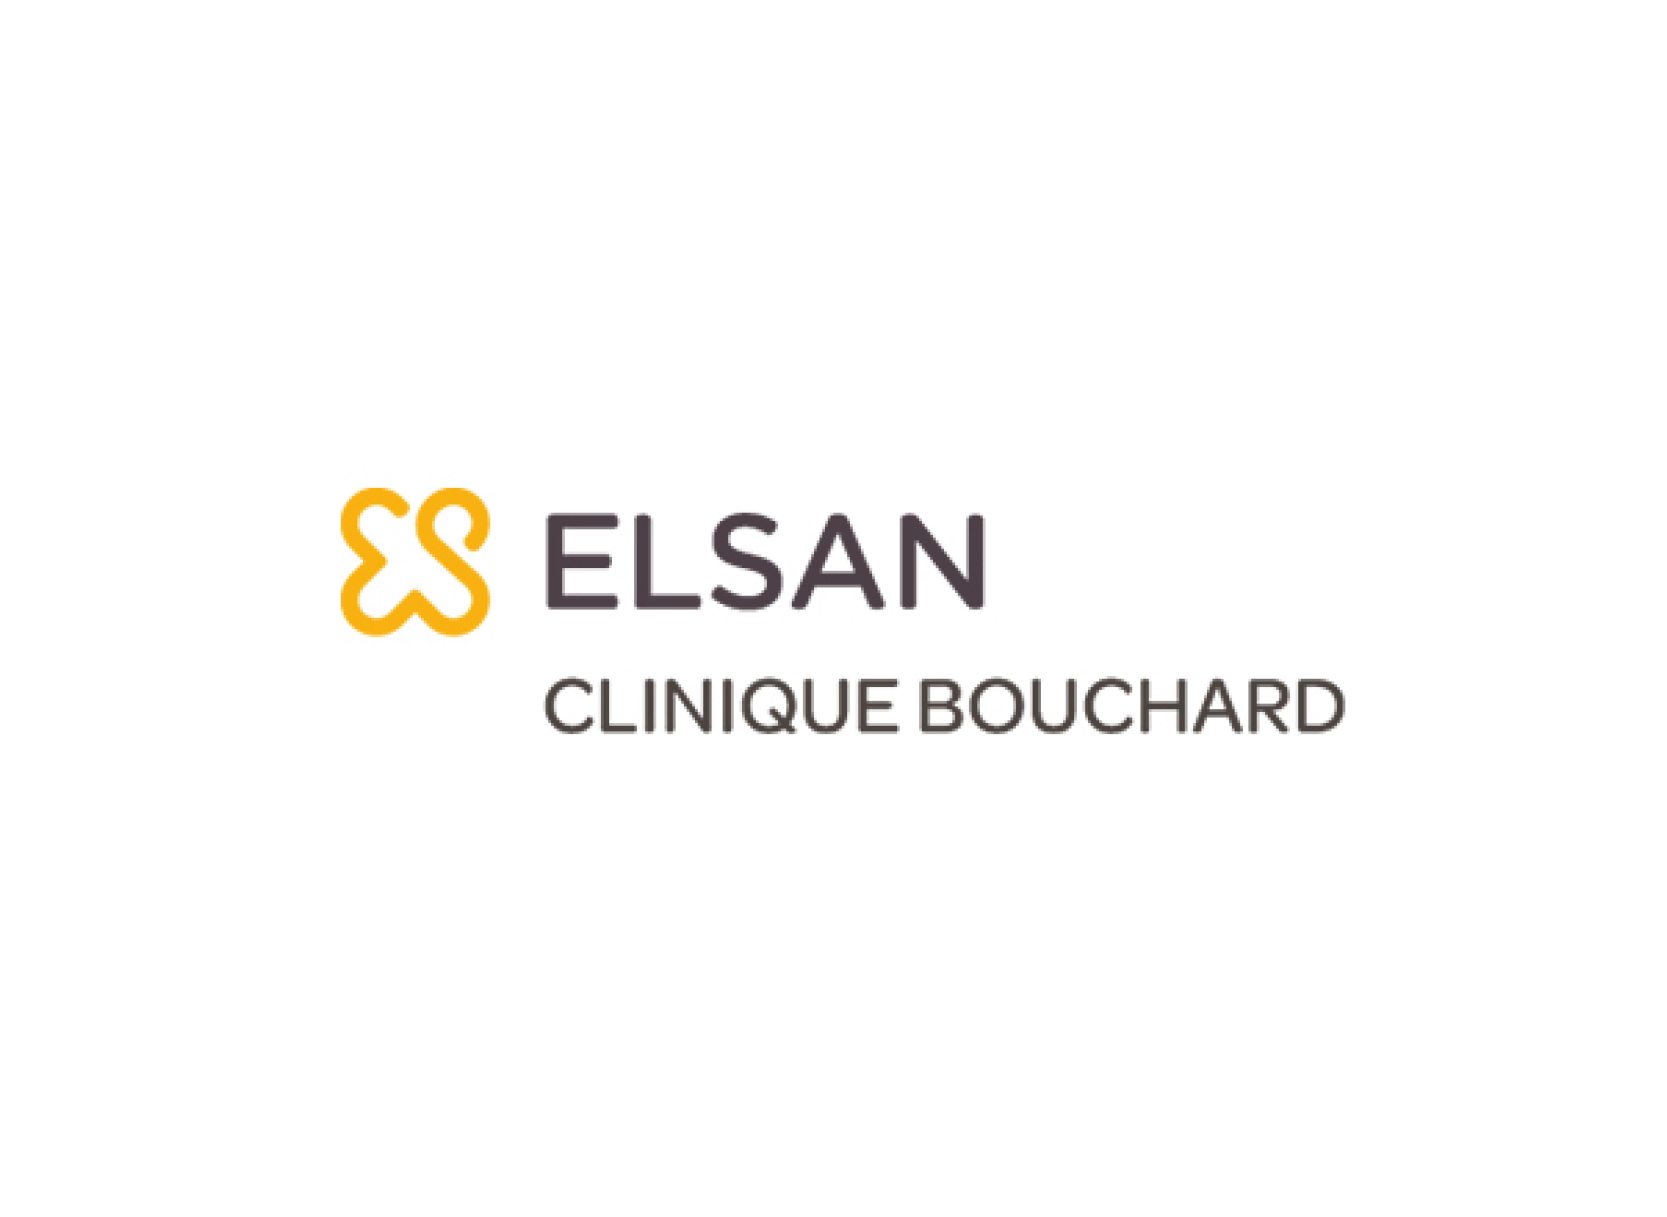 Logo Clinique Bouchard - ELSAN